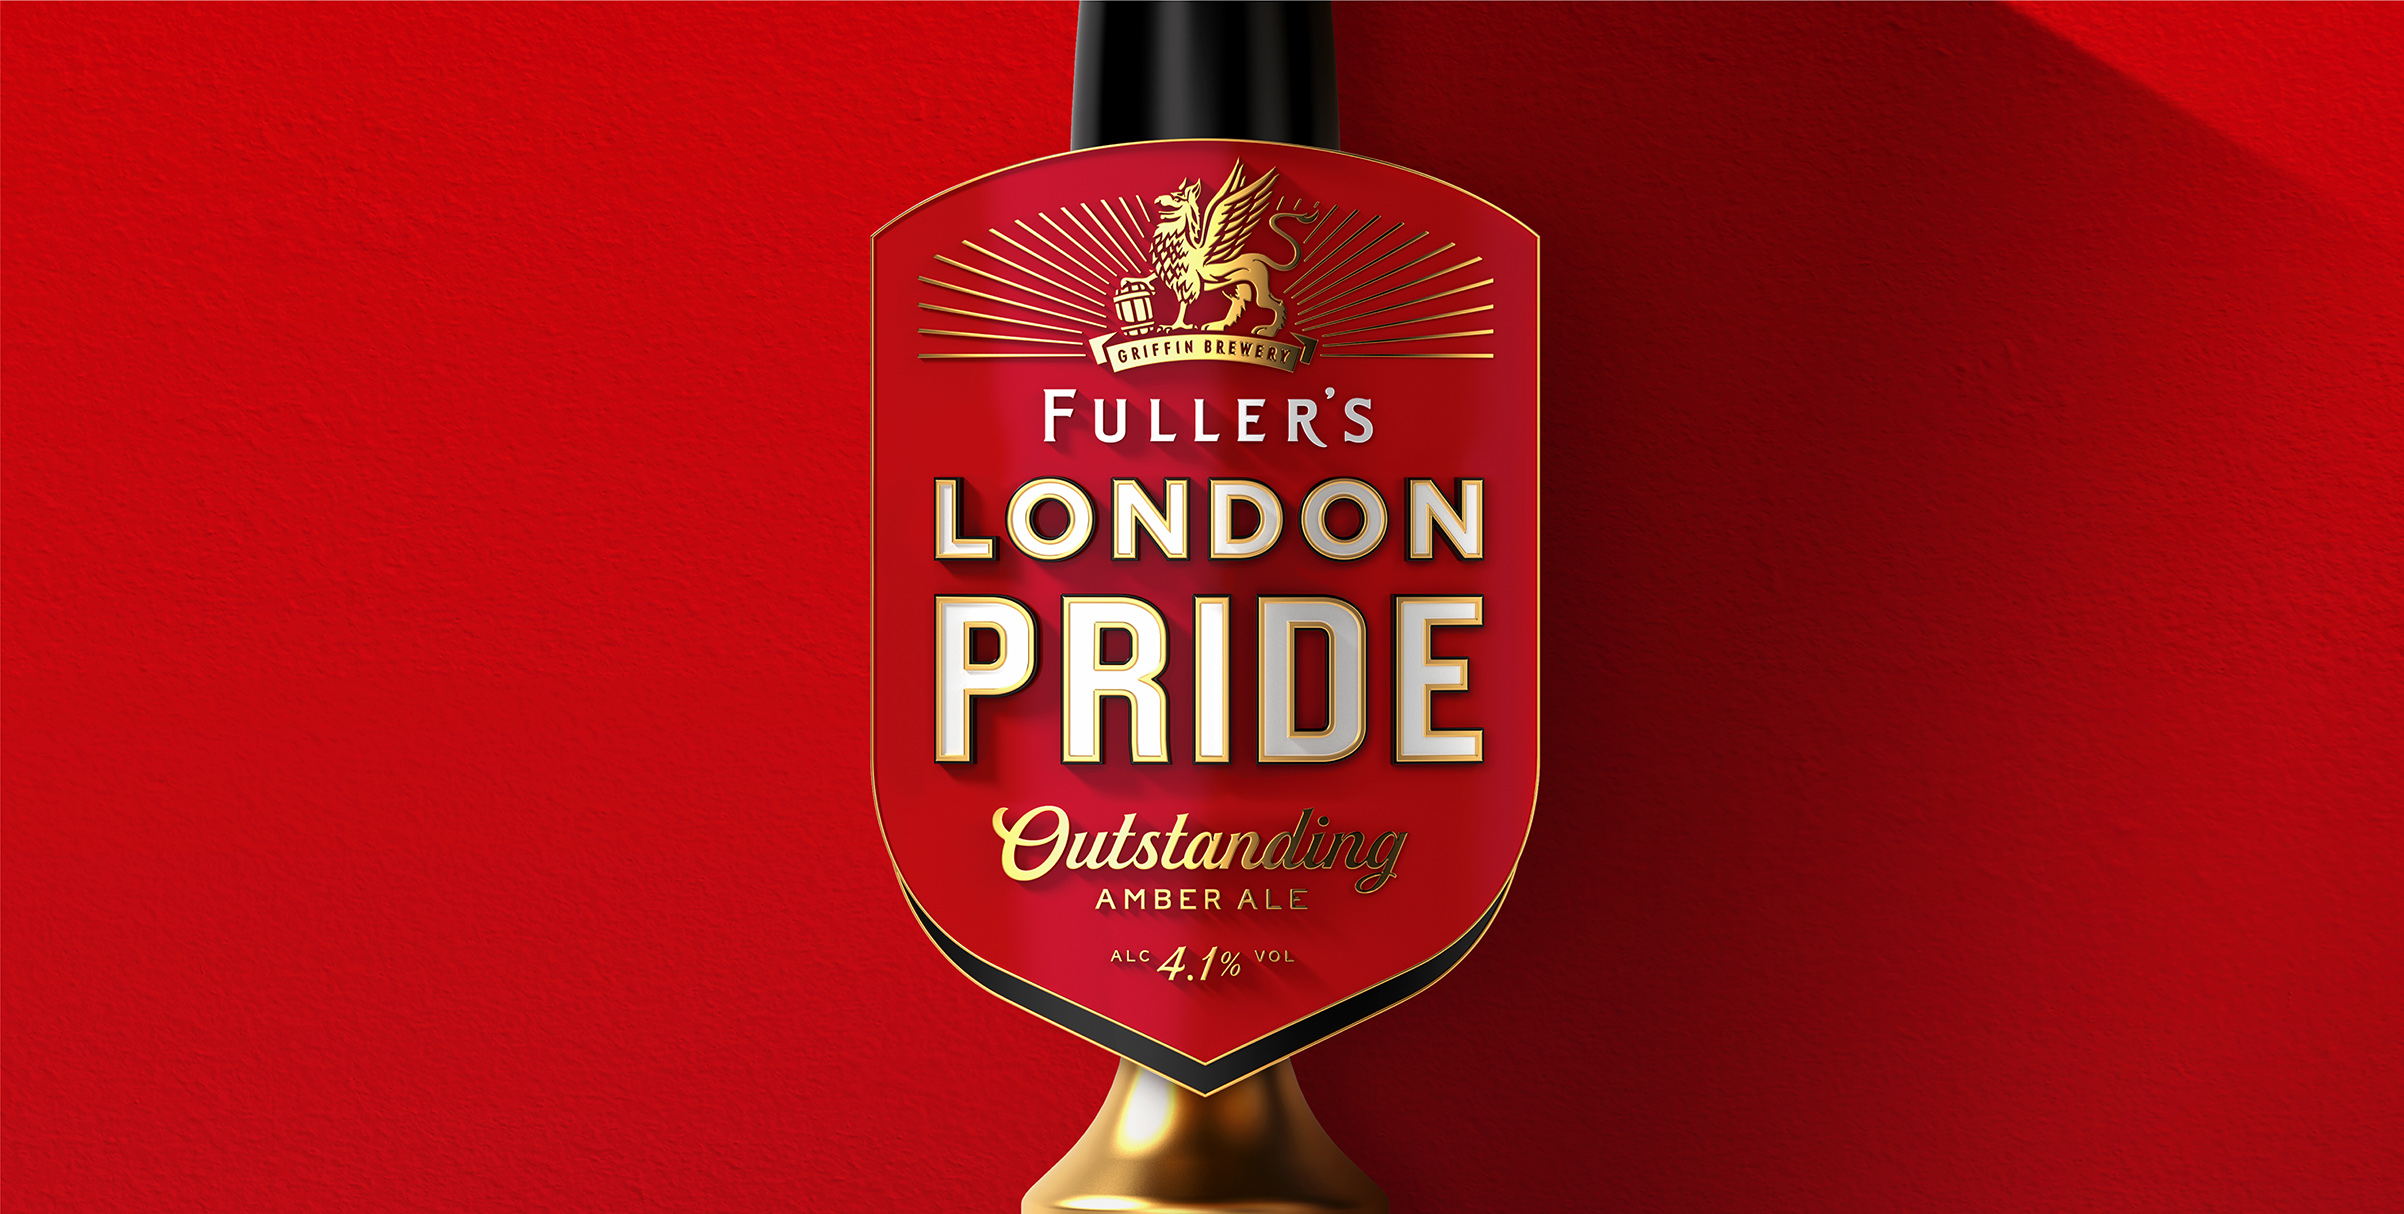 London Pride Reveals Depth and Craft with New Identity by Outlaw